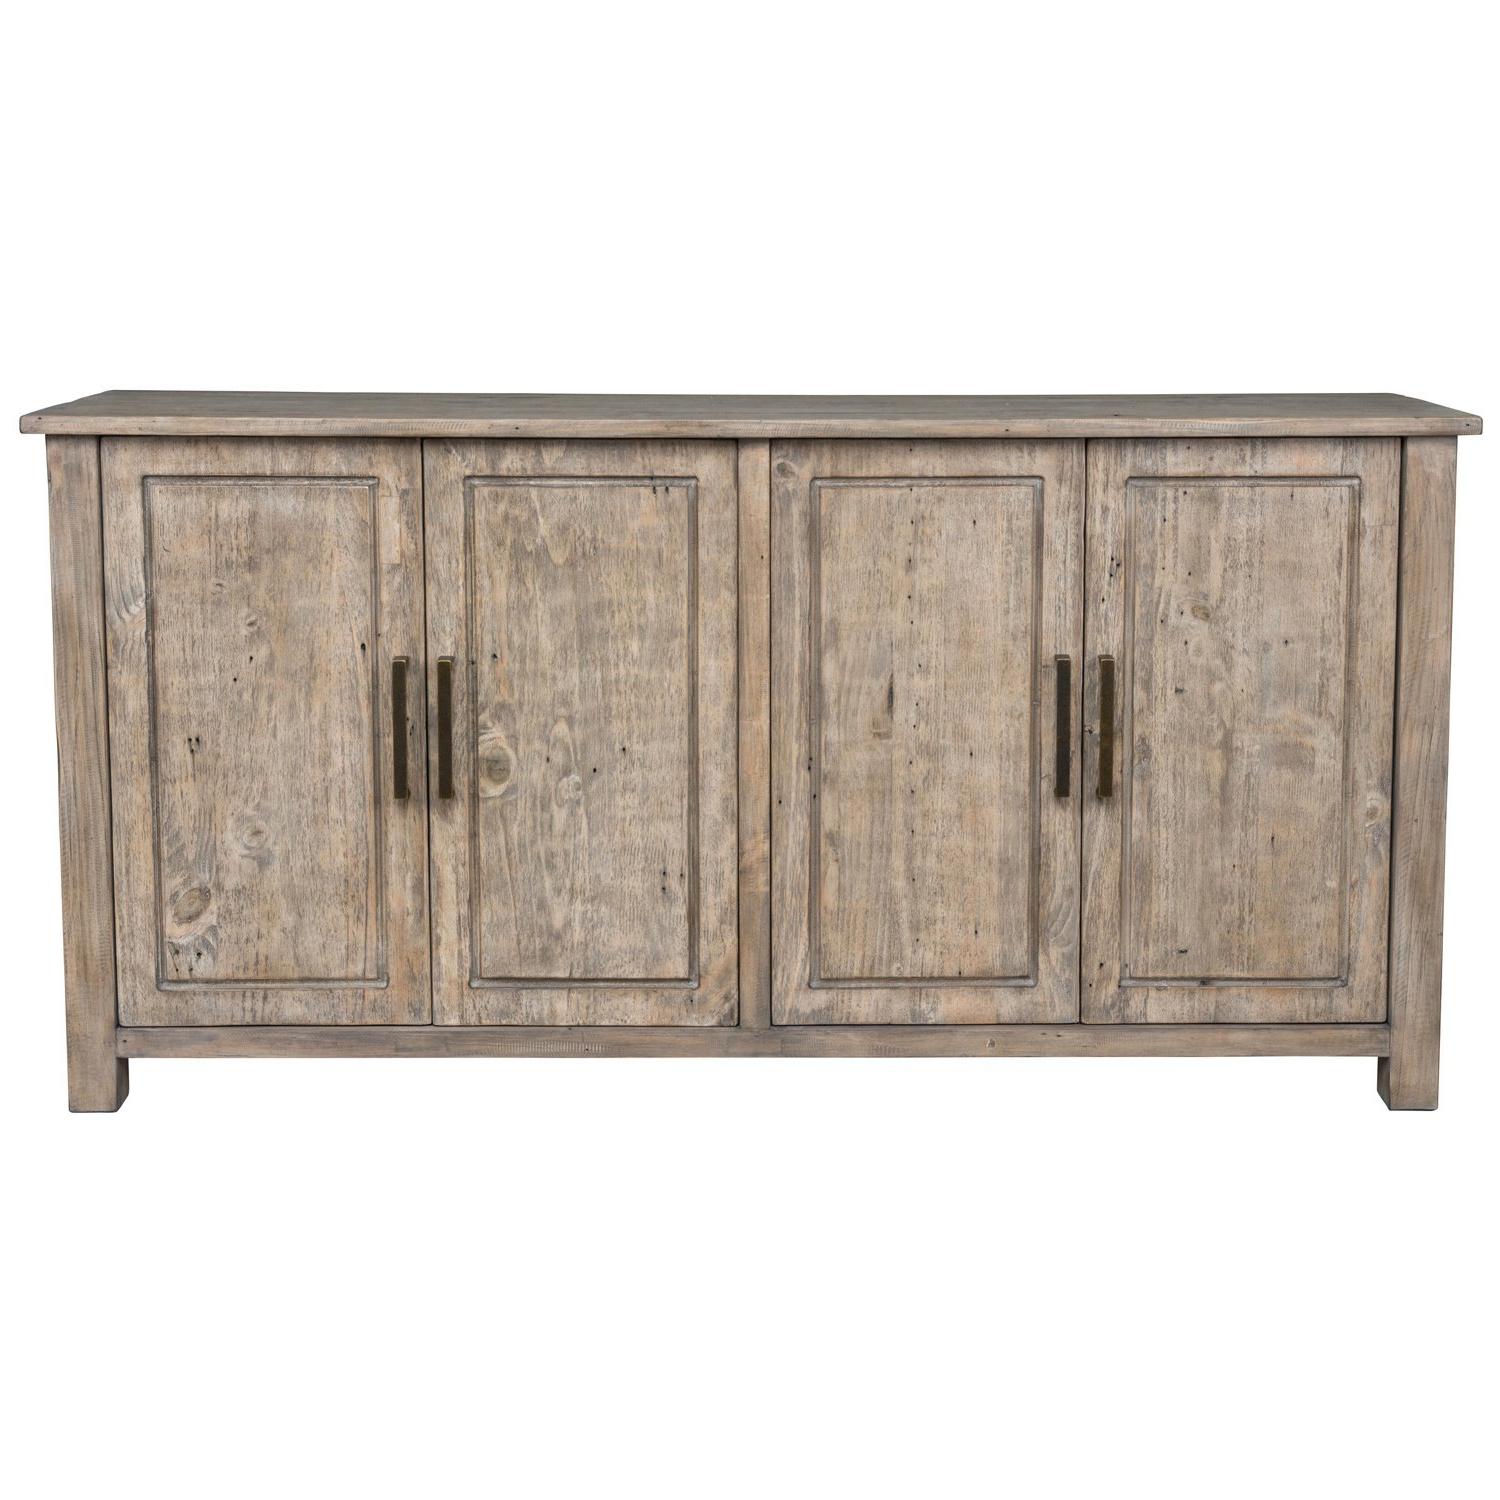 Newest Reclaimed Pine & Iron 72 Inch Sideboards Within Shop Aires Reclaimed Wood 72 Inch Sideboardkosas Home – Free (View 11 of 20)